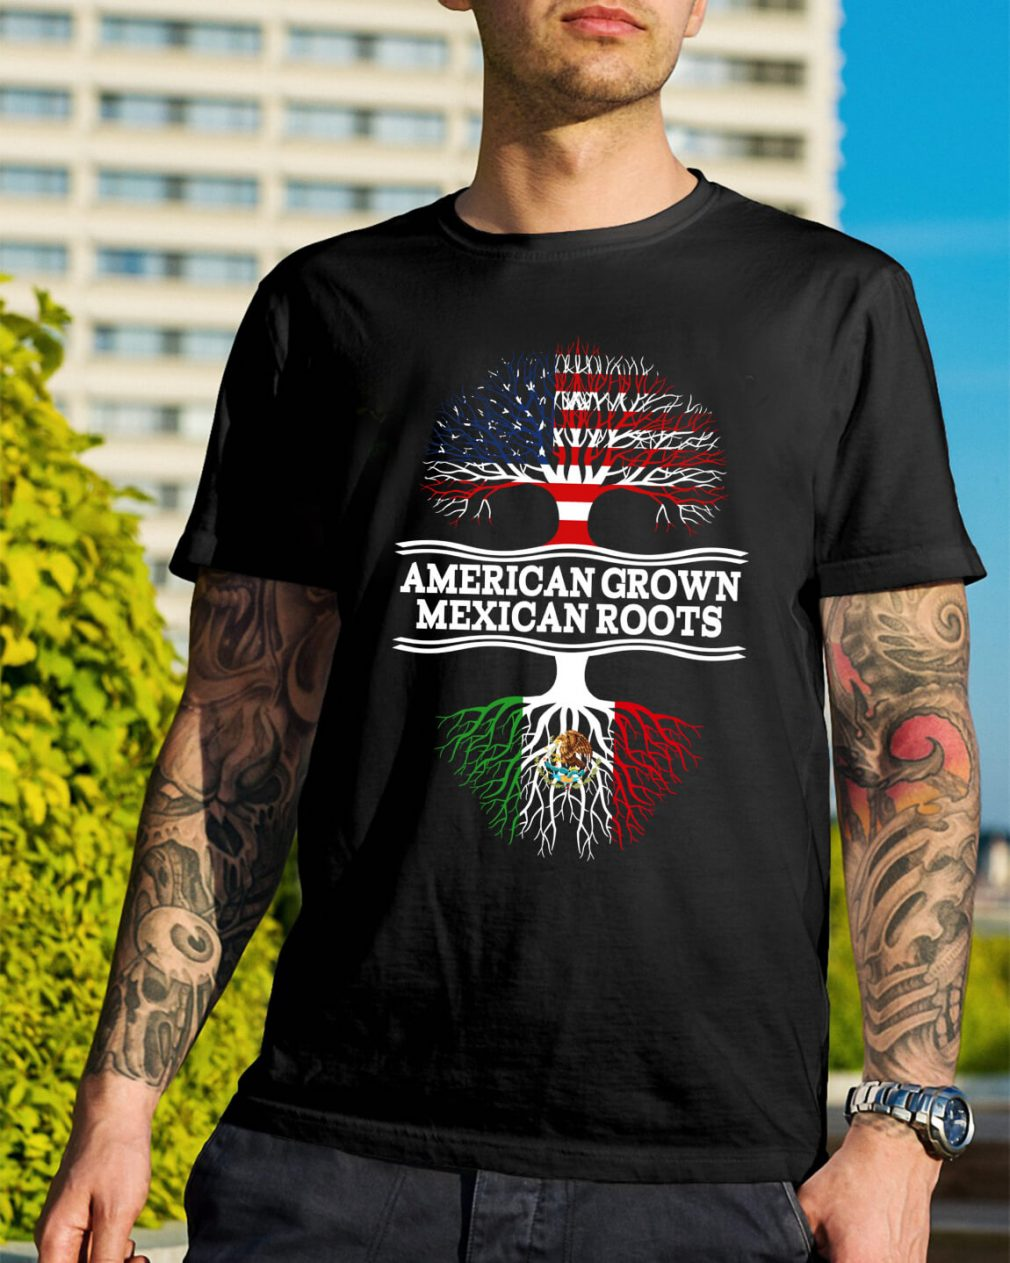 American grown Mexican roots shirt